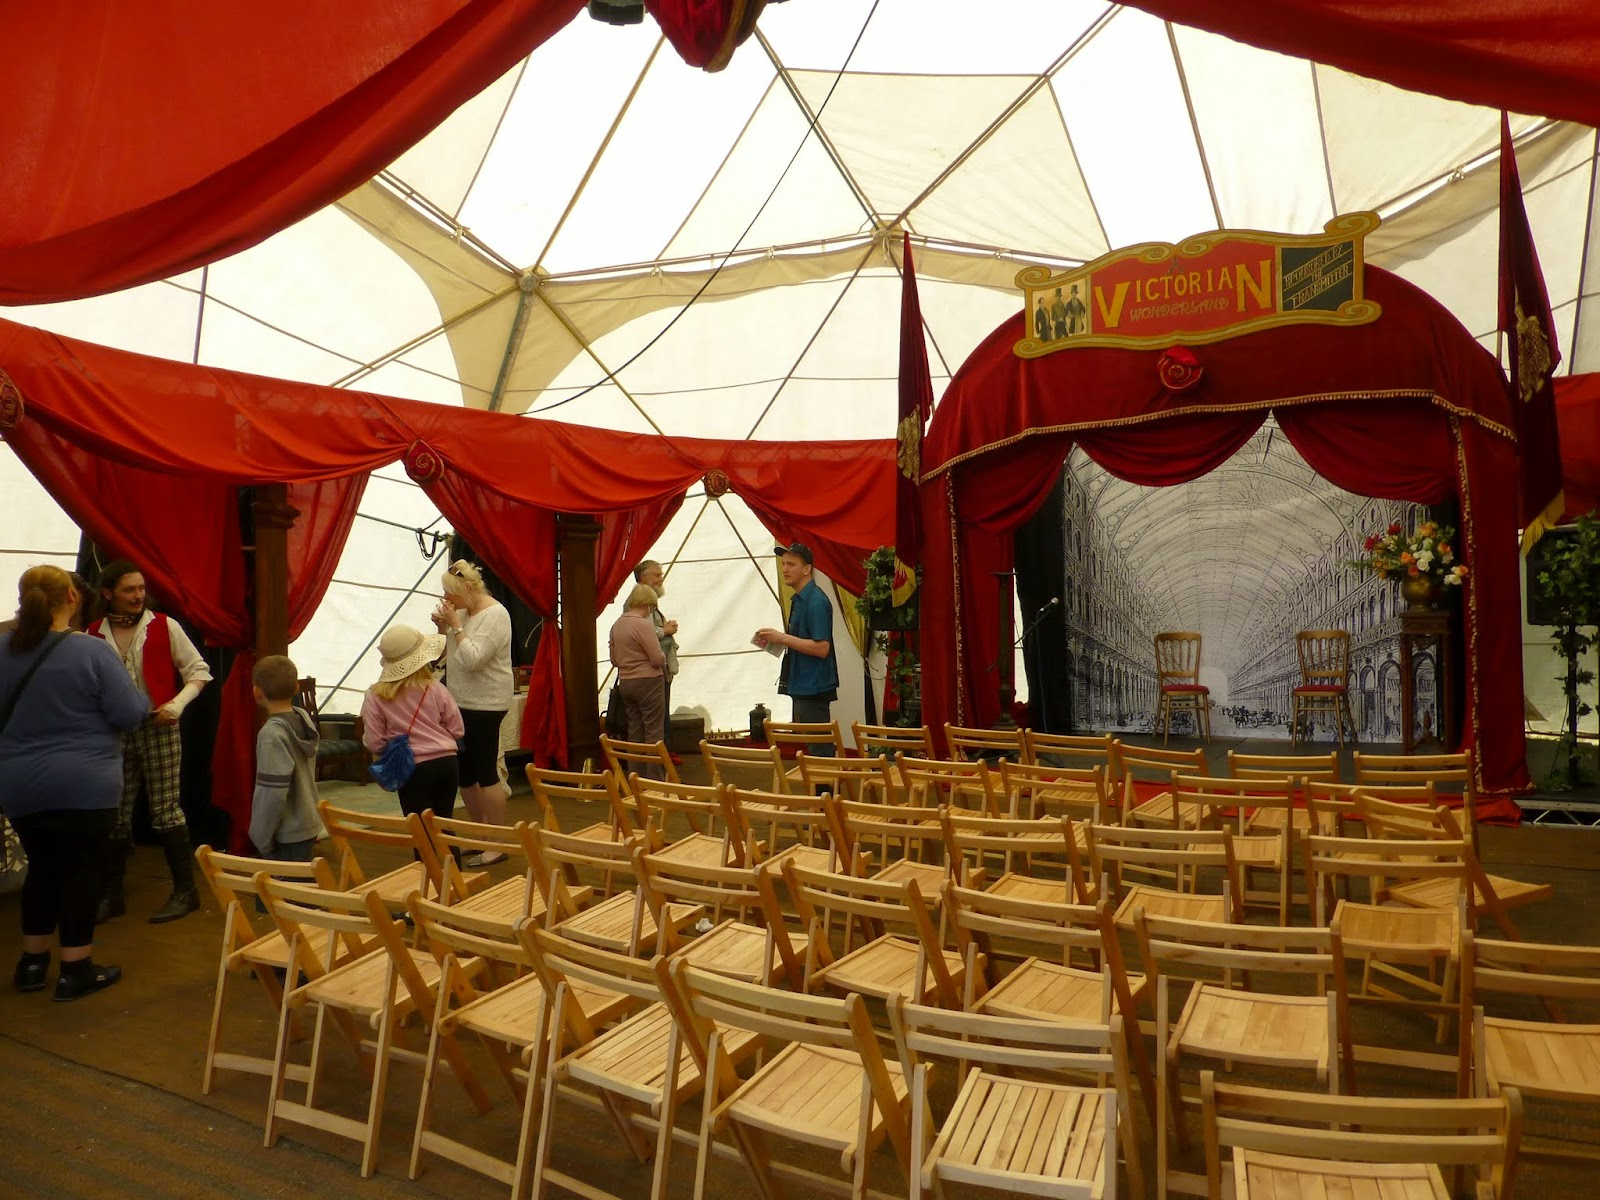 ...and a performing arts tent which had a Victorian theme to it though not much going on when I looked in. & Crystal Palace Overground Festival | Glass Half Full